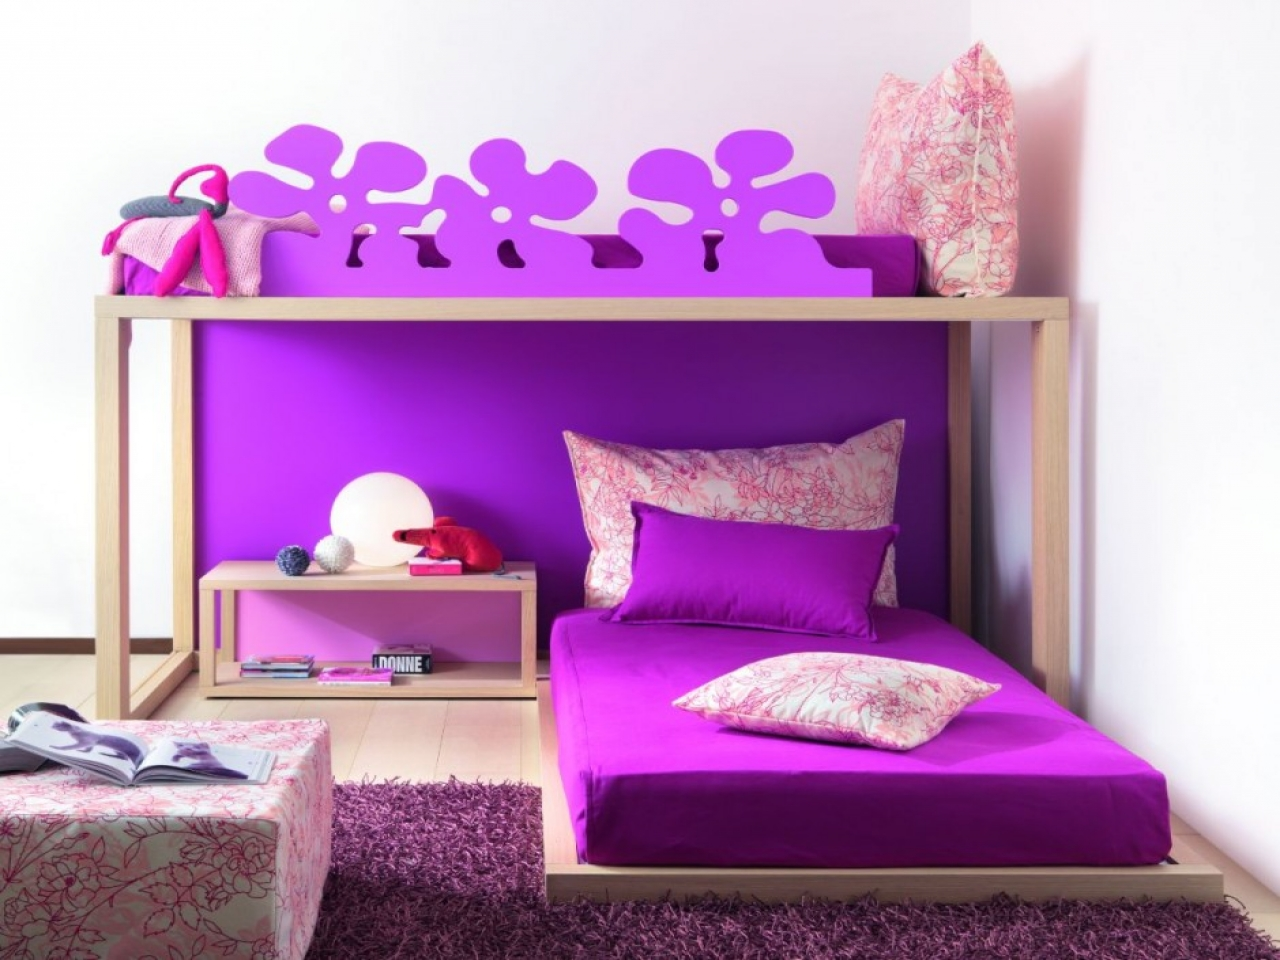 Cute bedroom for girls bahay ofw for Girls bedroom decorating ideas with bunk beds